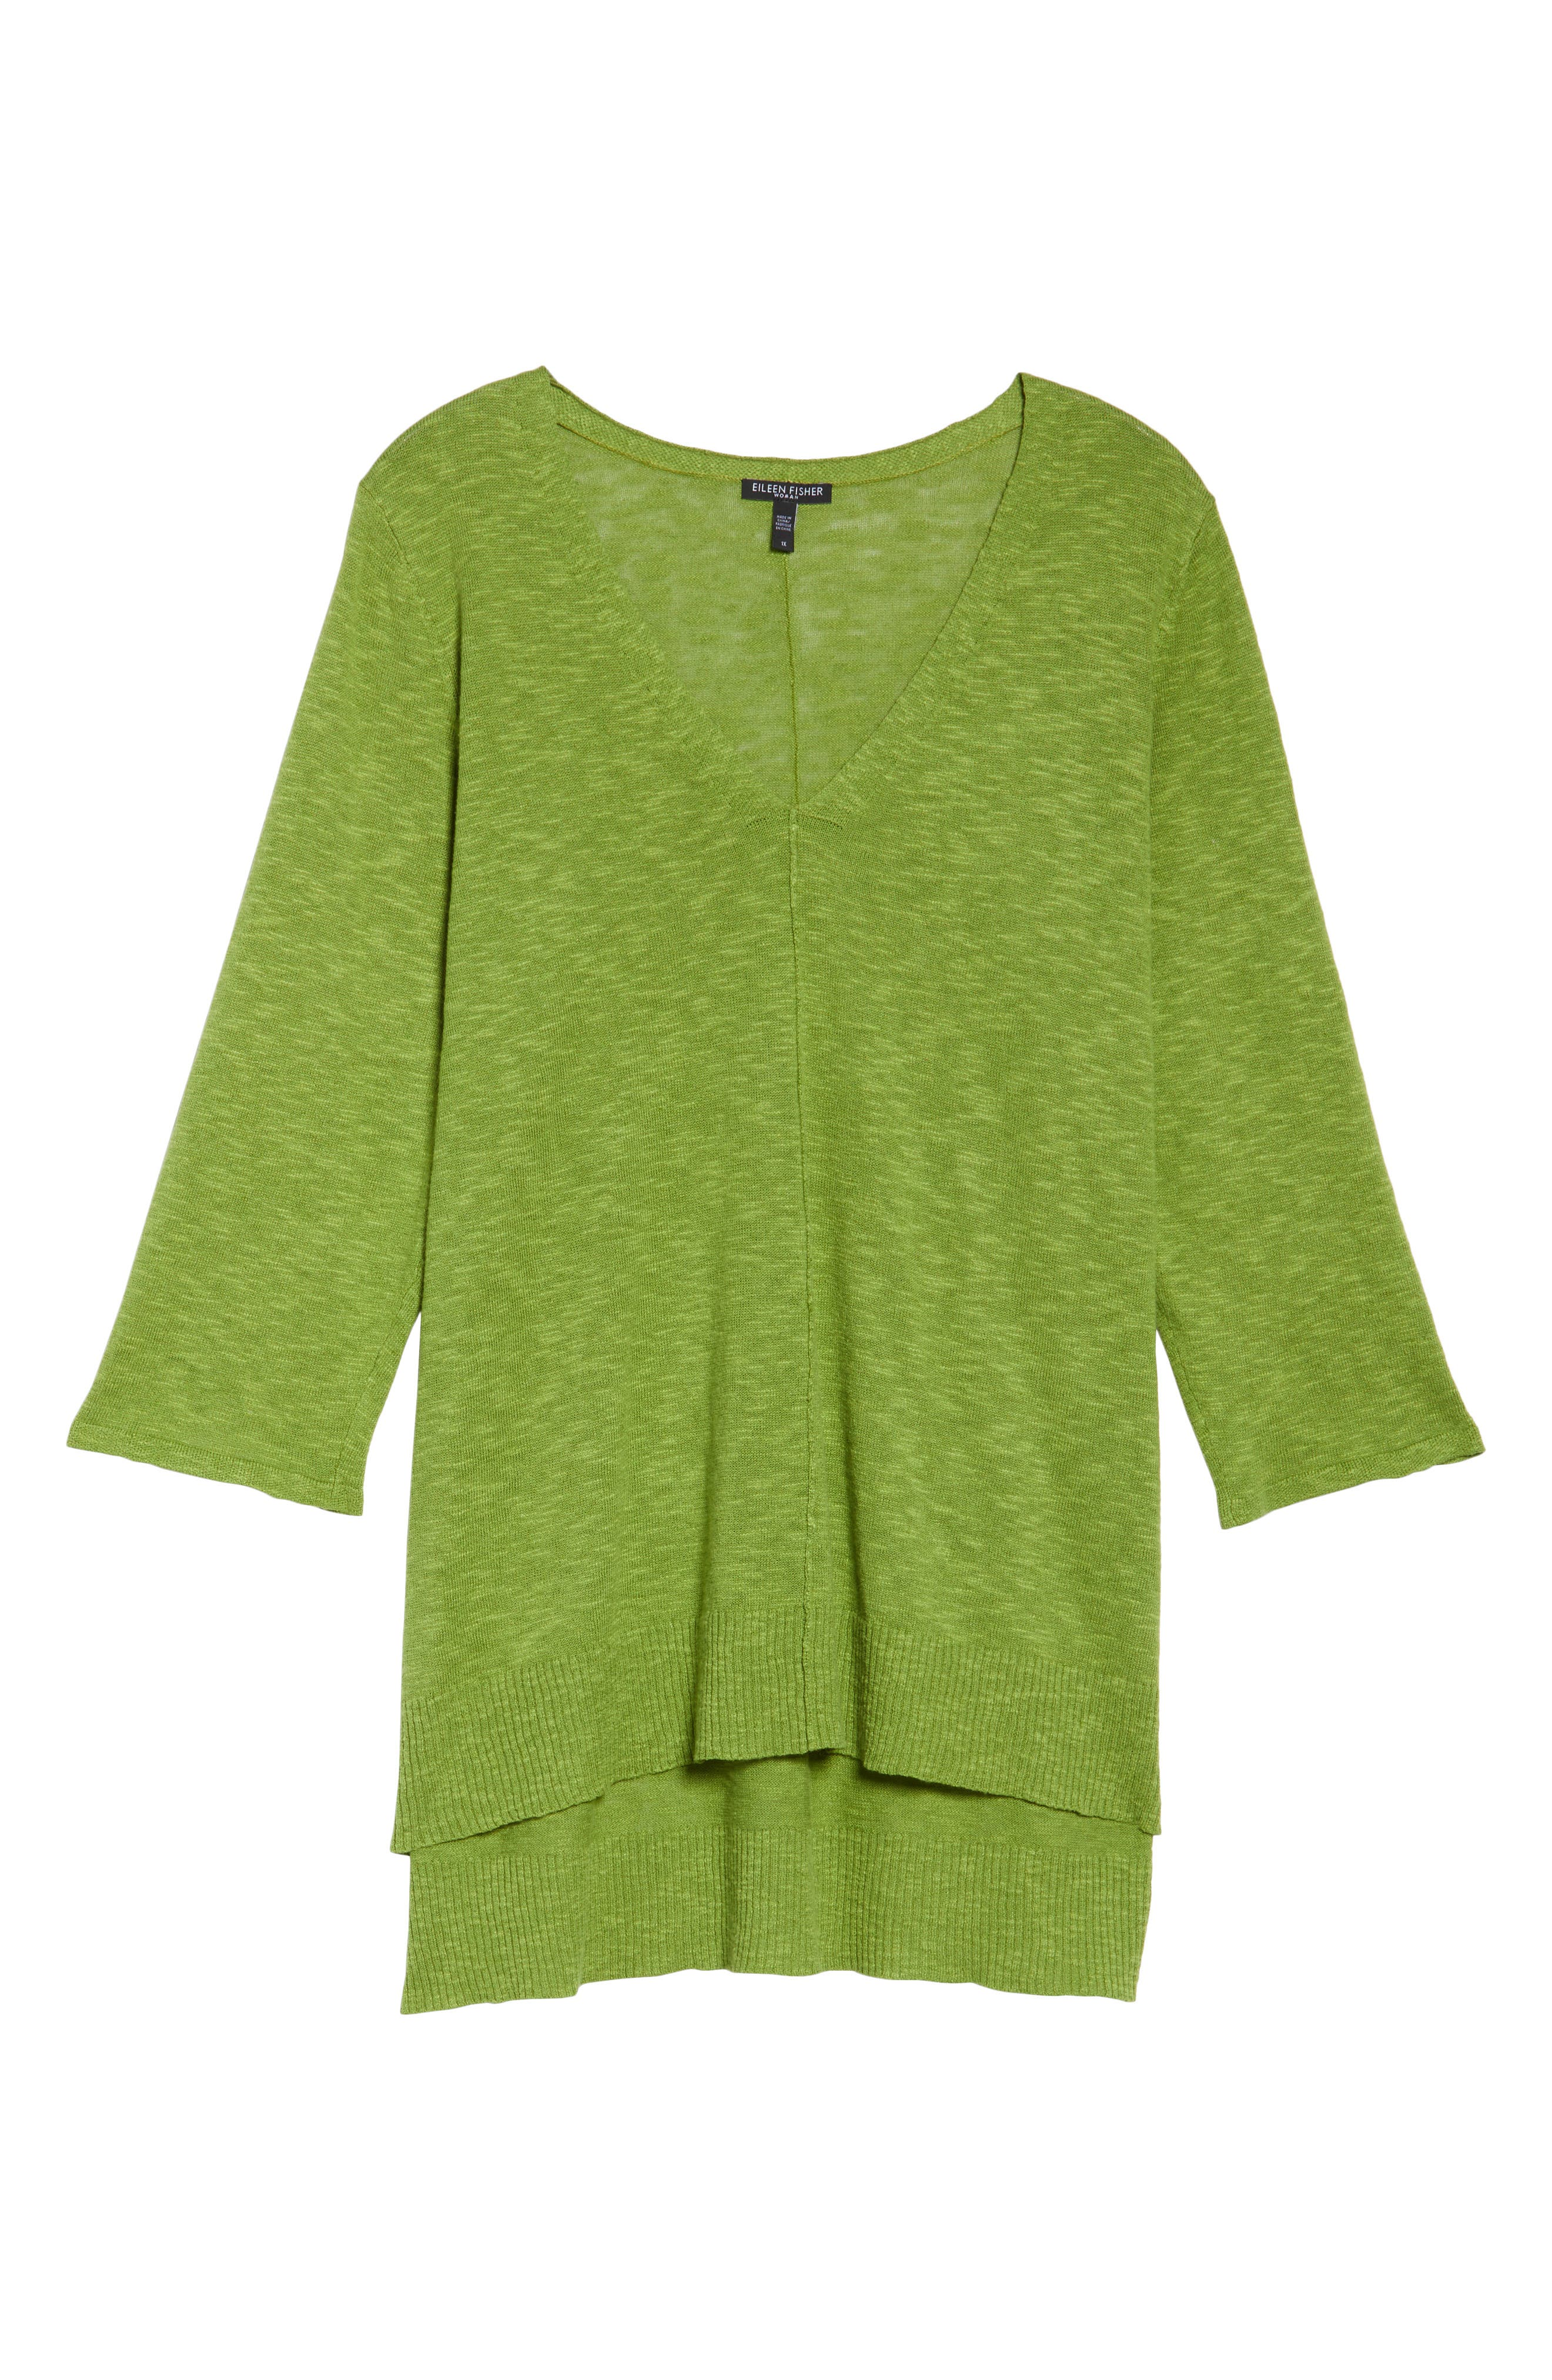 Main Image - Eileen Fisher Organic Linen & Cotton High/Low Sweater (Plus Size)